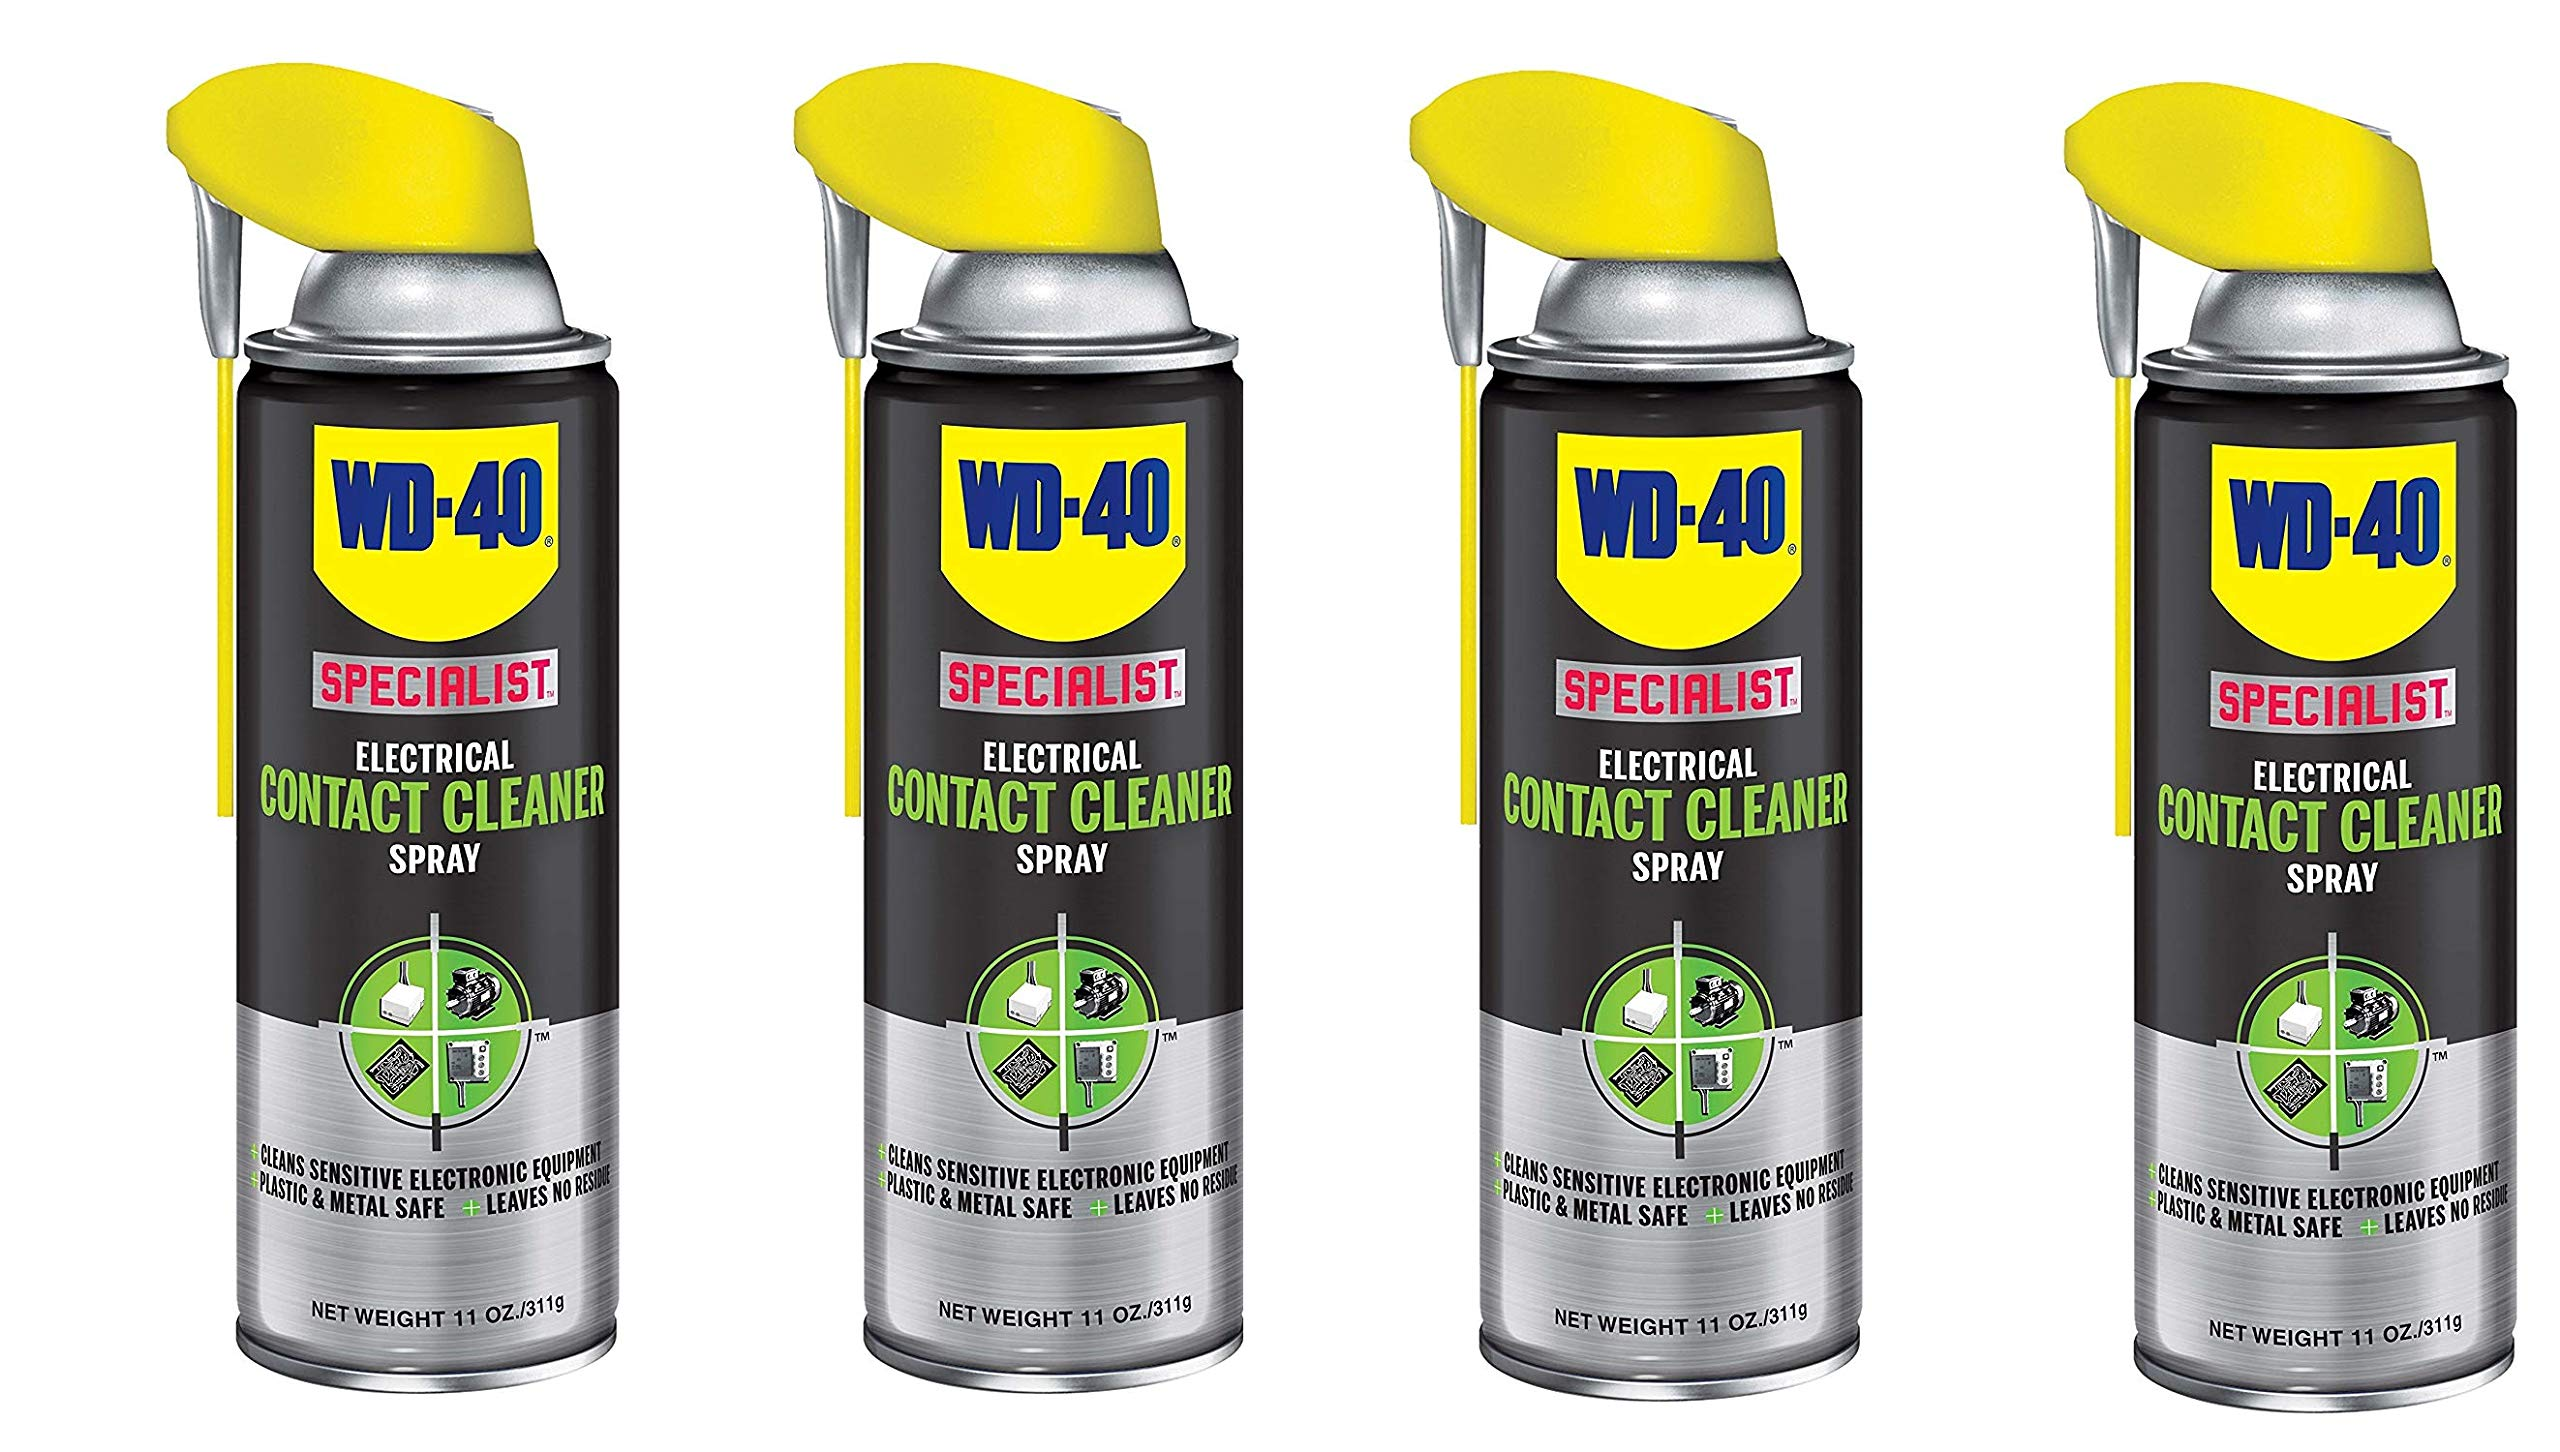 Specialist Electrical Contact Cleaner Spray, Electronic and Electrical Equipment Cleaner, 11 oz, 300554-E